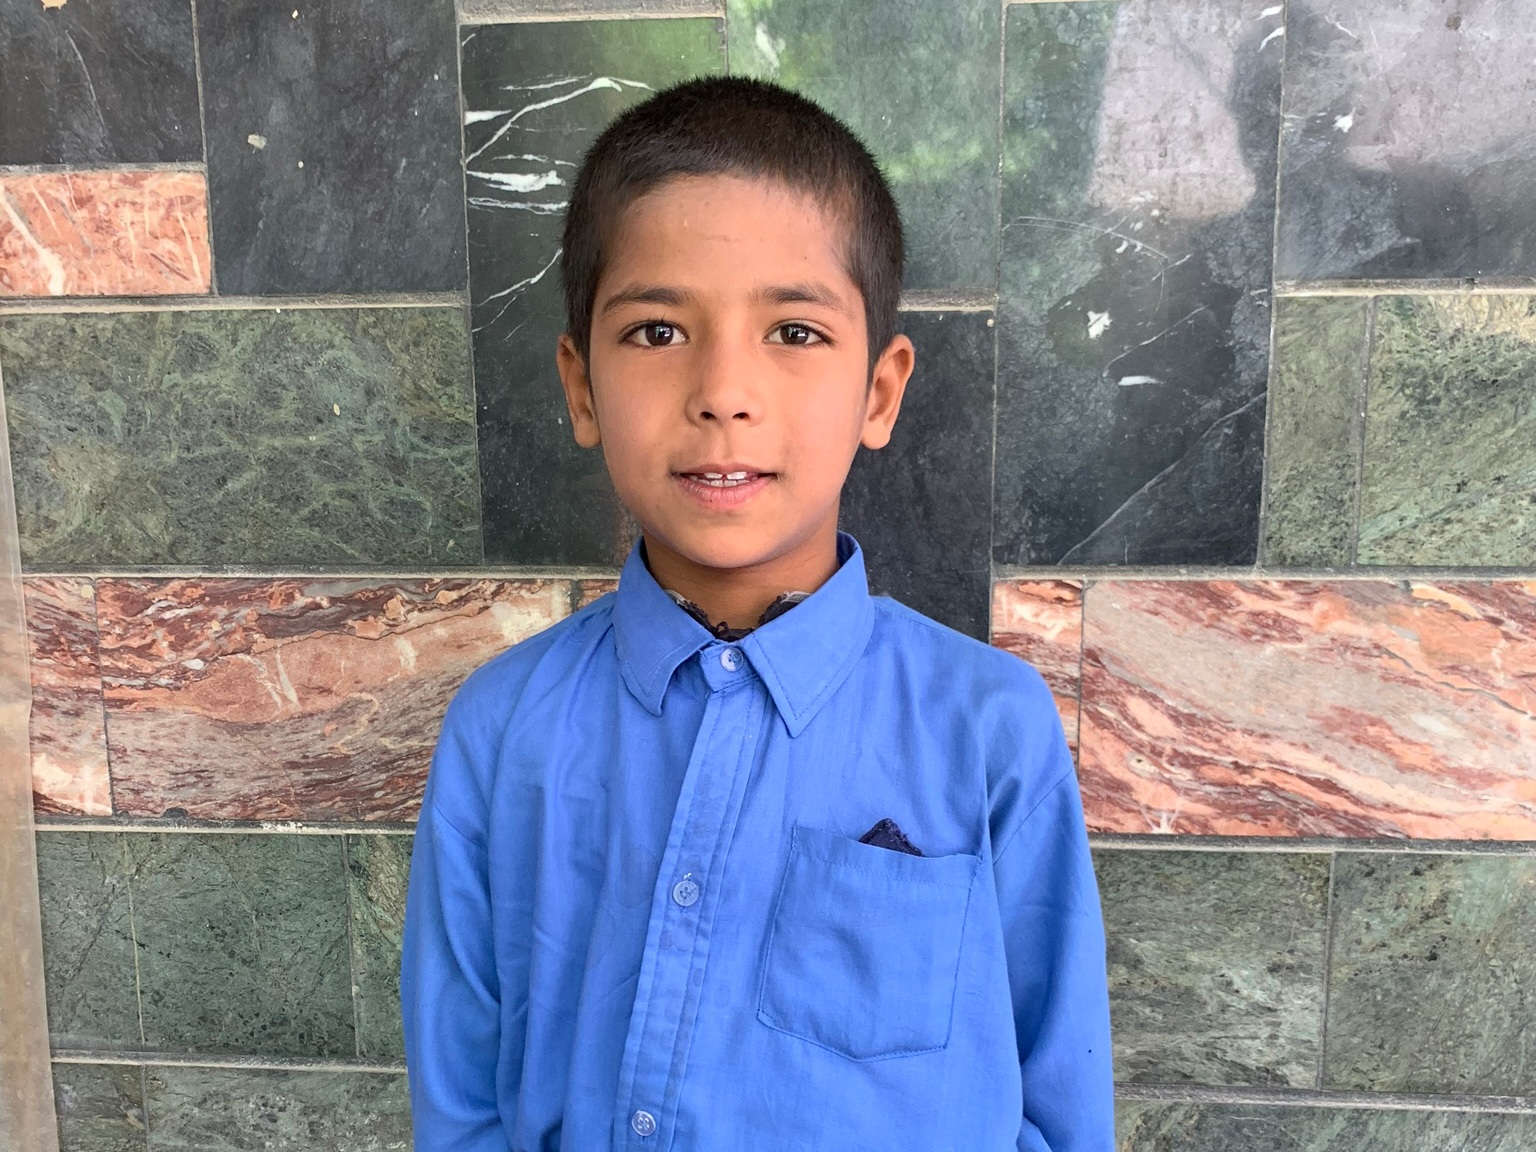 Matheila, Age 7 - Matheila has 3 siblings. His mother is currently unemployed. His father works construction.BE MATHEILA'S PARTNER >